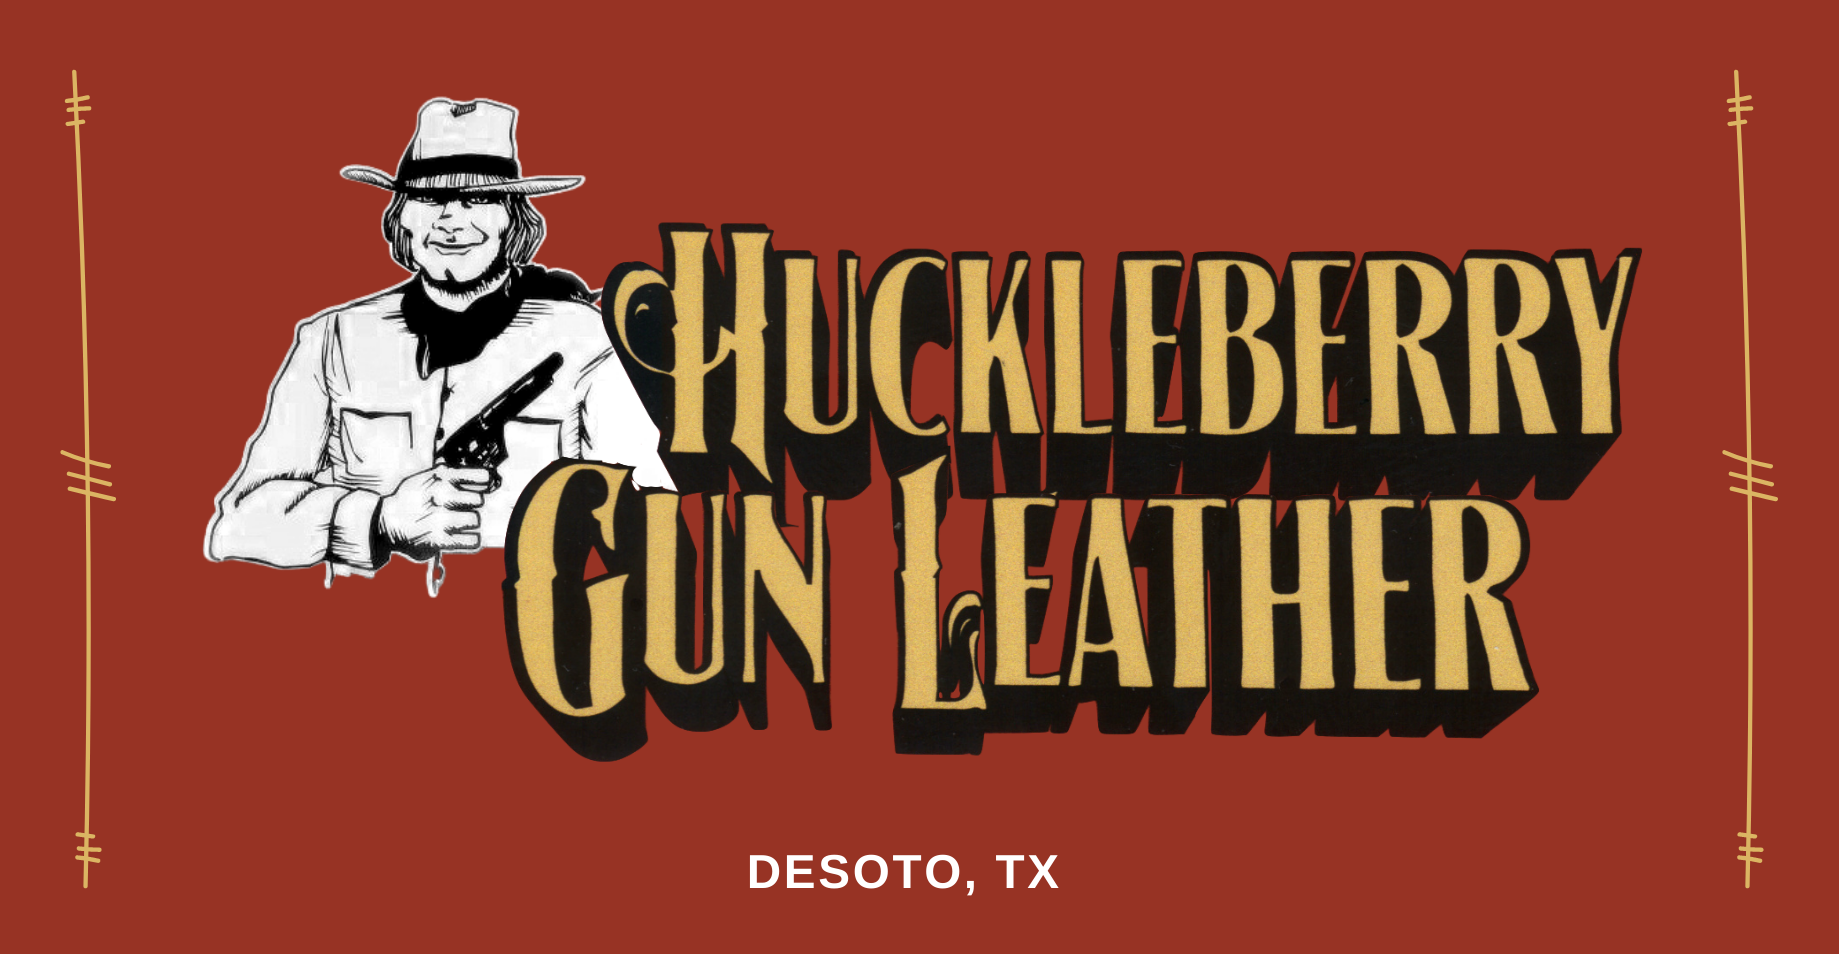 Huckleberry Gun Leather